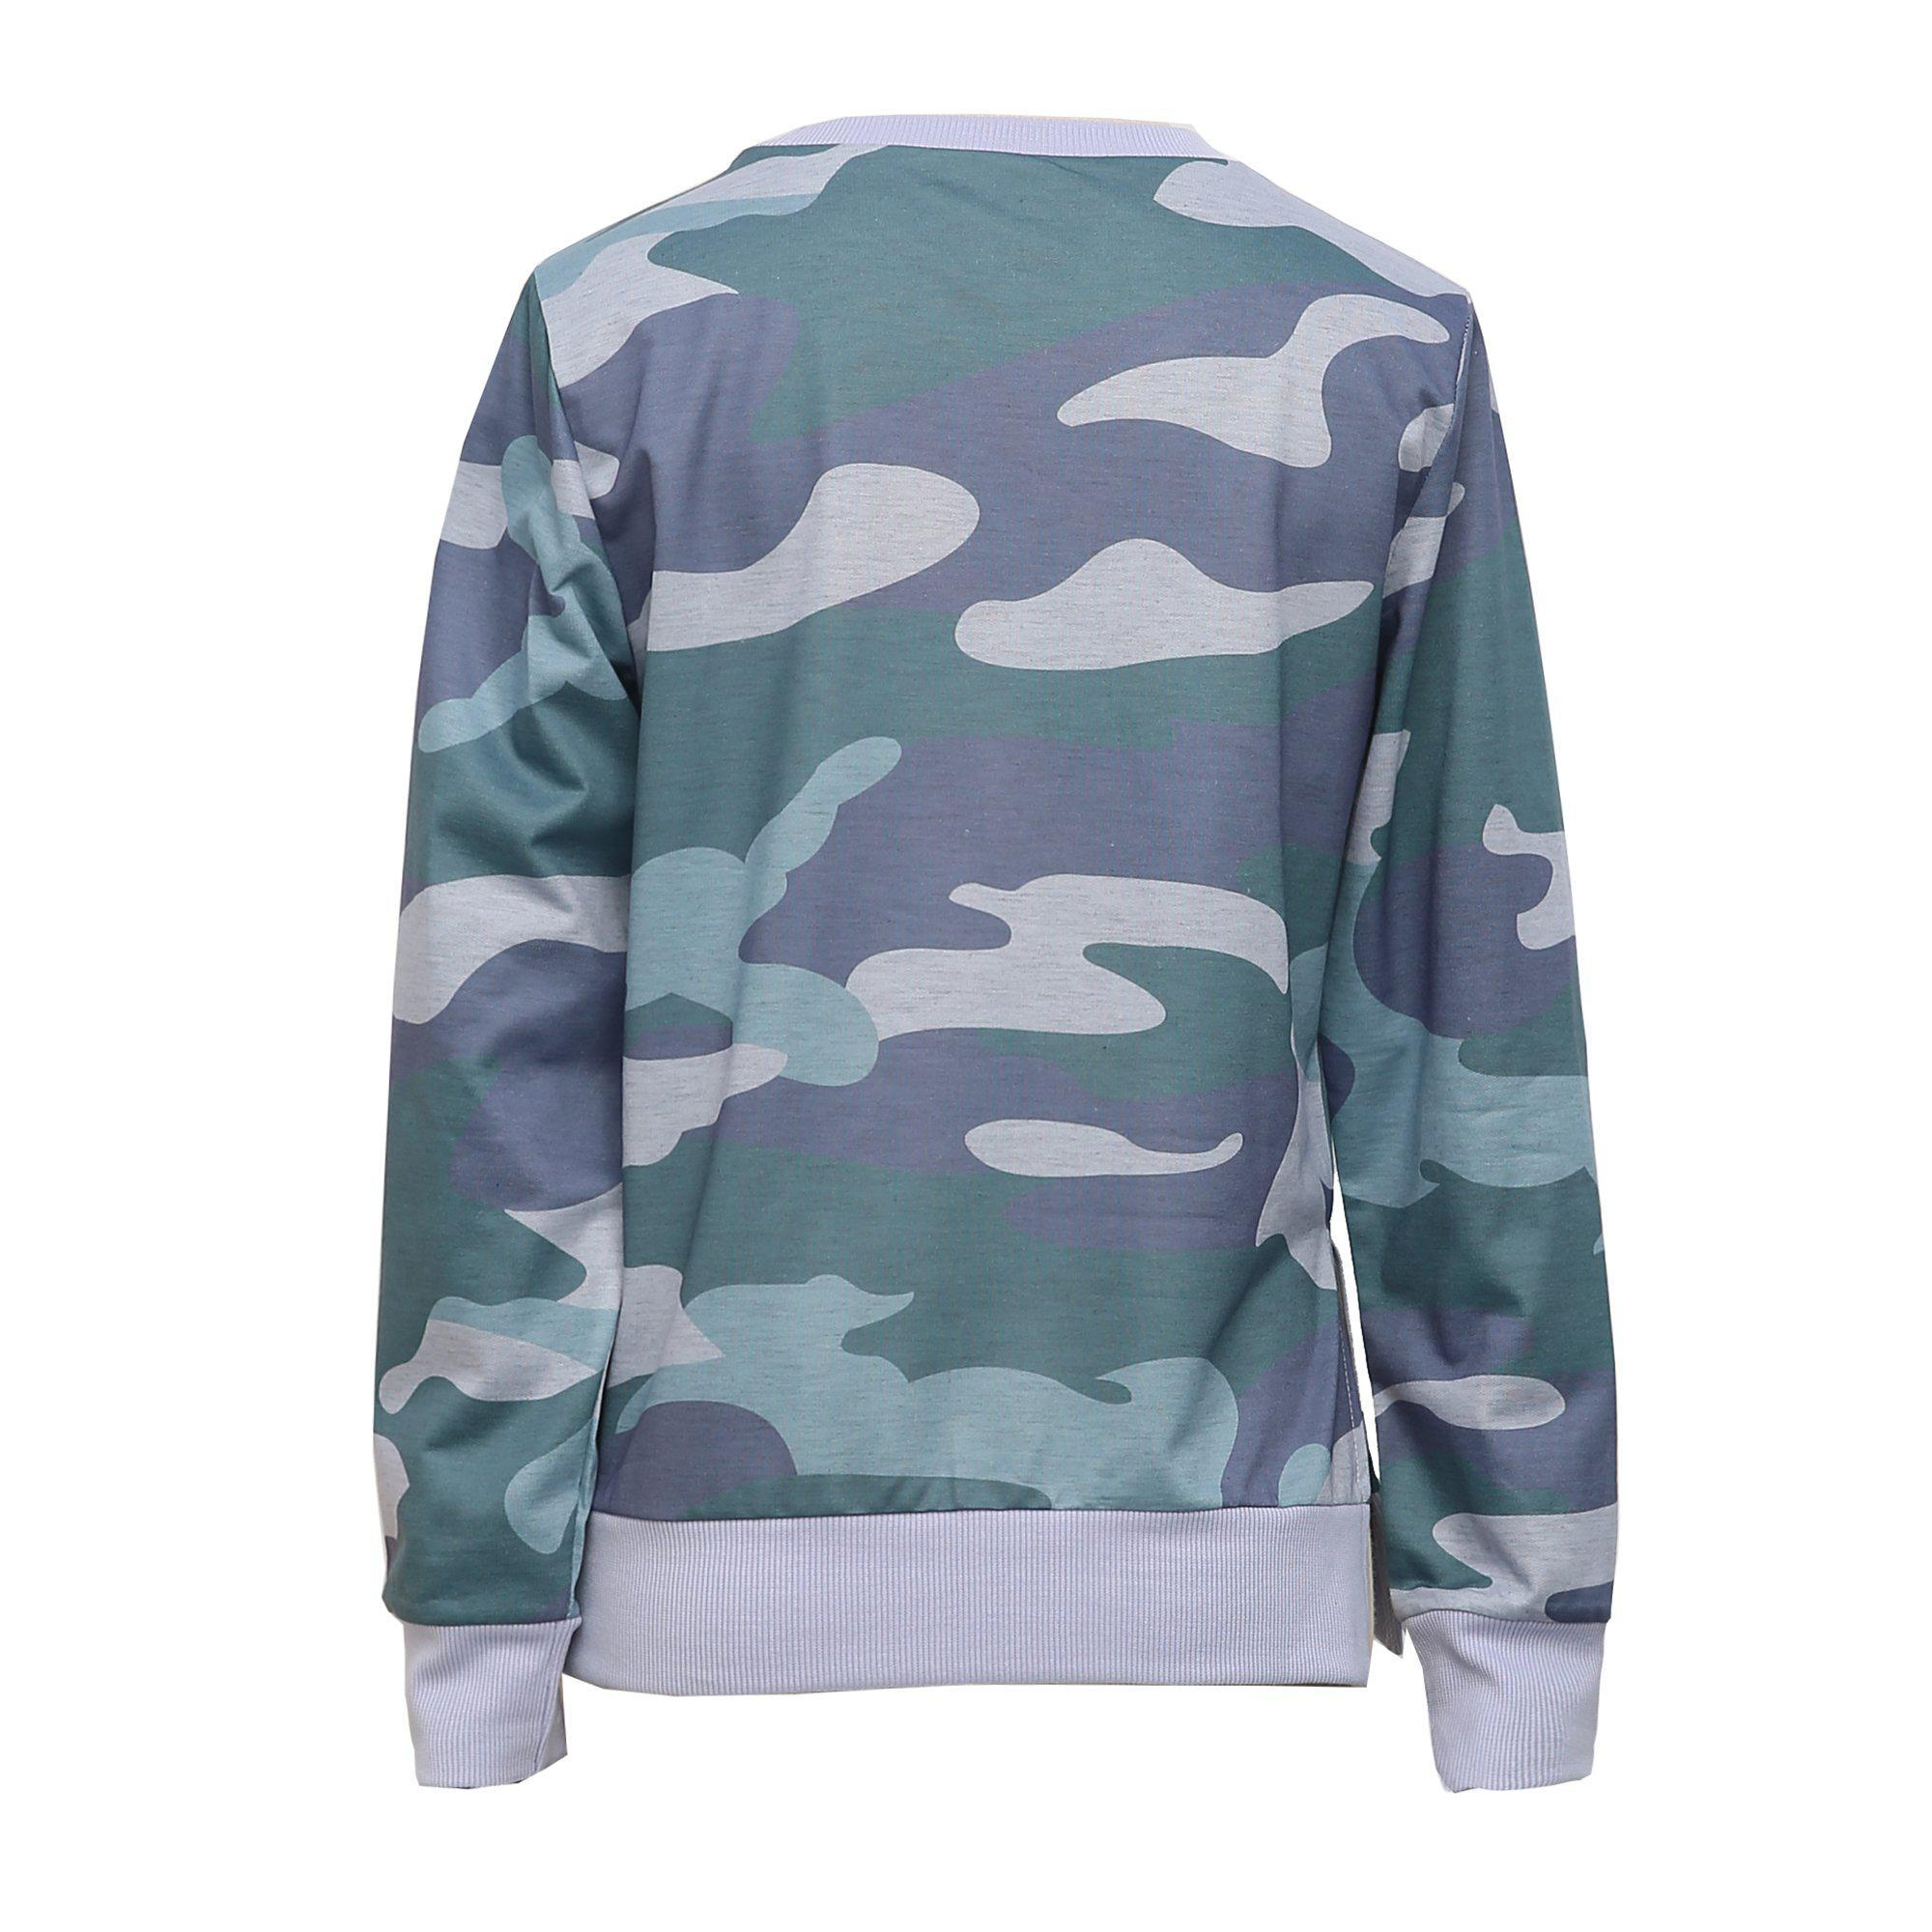 Cute on the Couch Camo Sweatshirt 5